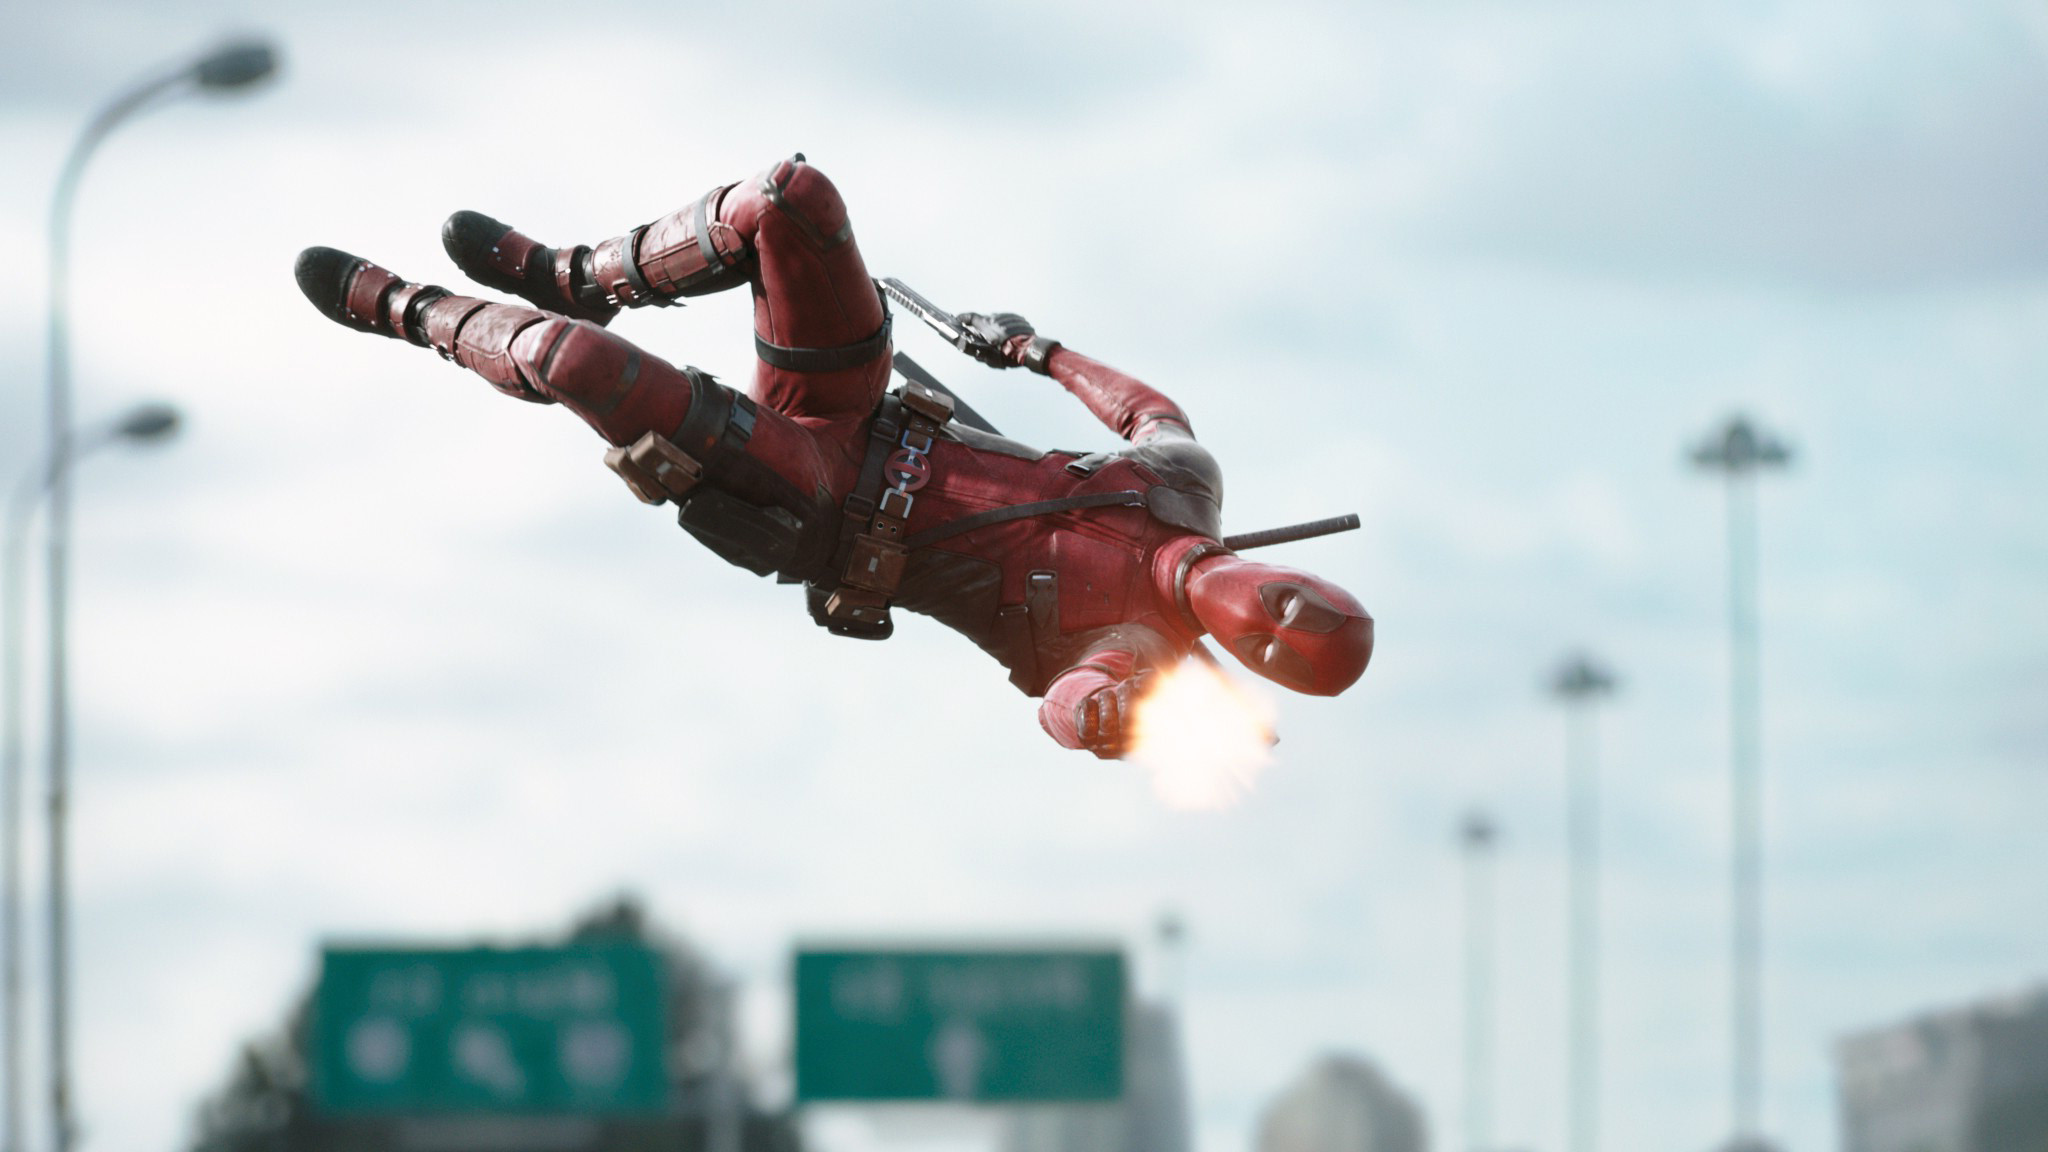 Deadpool Movie 2016 Wallpaper : HD Wallpapers available in different  resolution and sizes for our computer desktop backgrounds, laptop & mobile  phones.